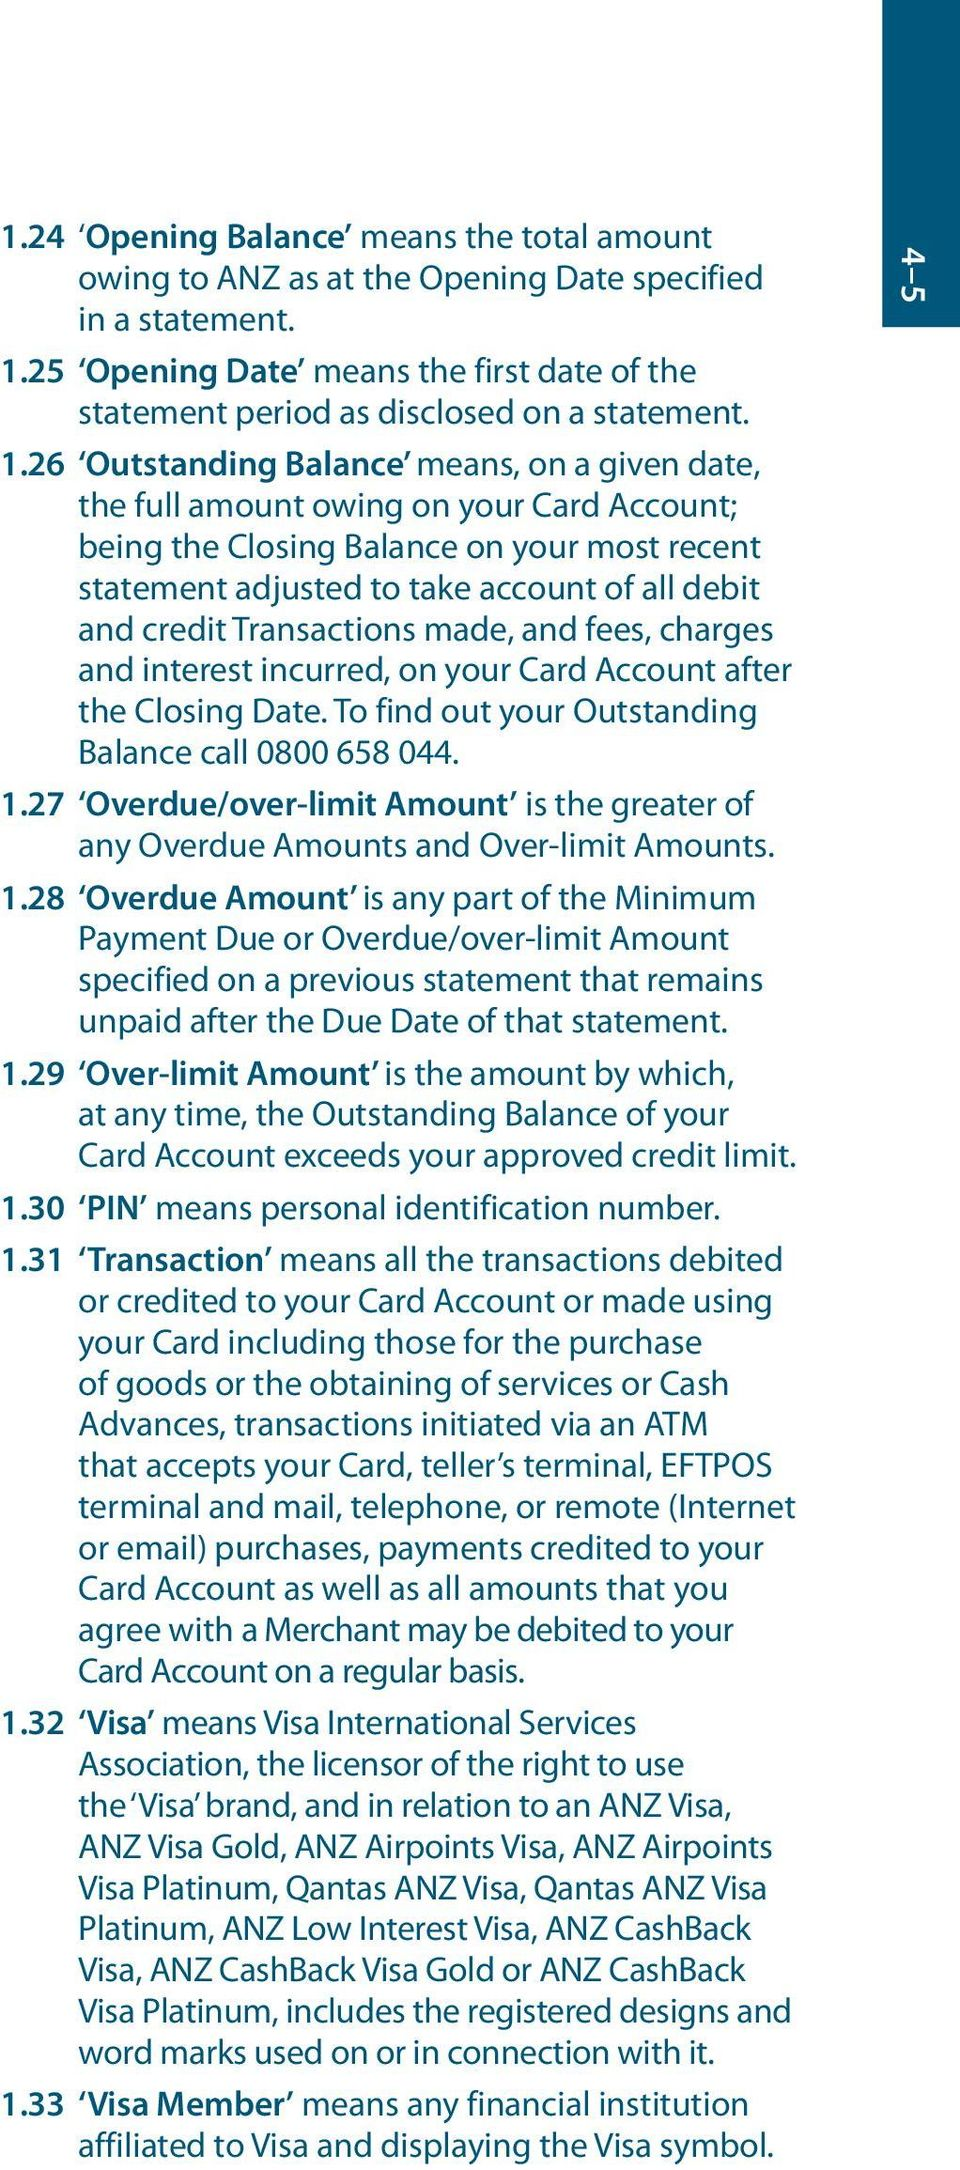 26 Outstanding Balance means, on a given date, the full amount owing on your Card Account; being the Closing Balance on your most recent statement adjusted to take account of all debit and credit